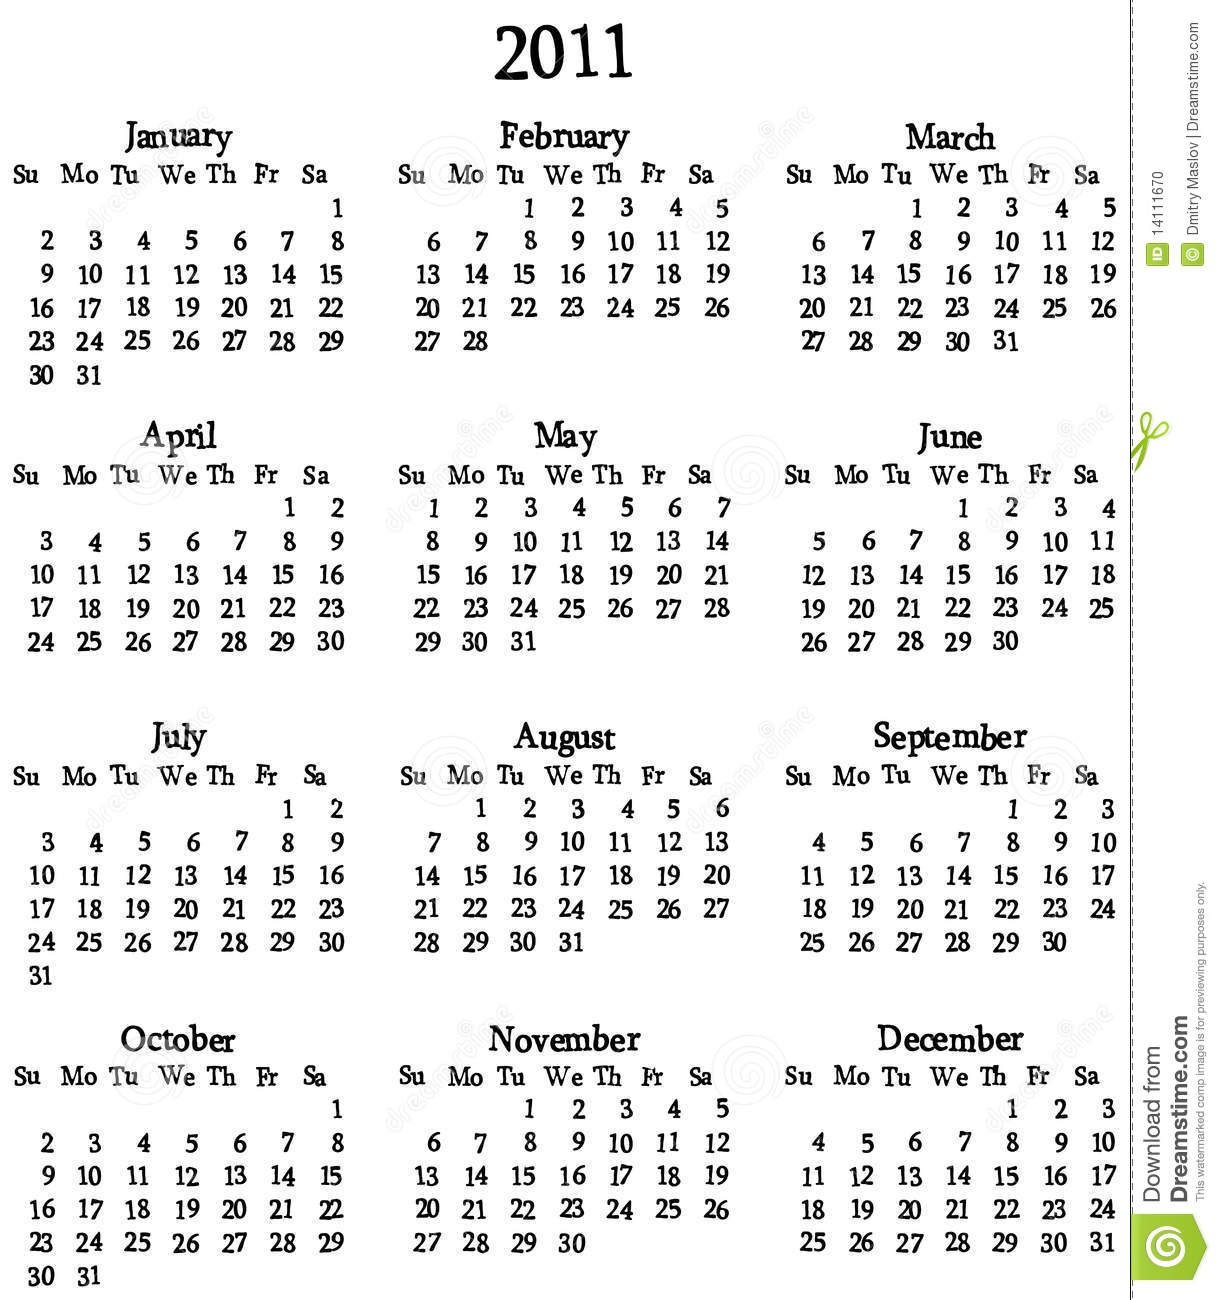 2011 Calendar Template Stock Photo Image 14111670